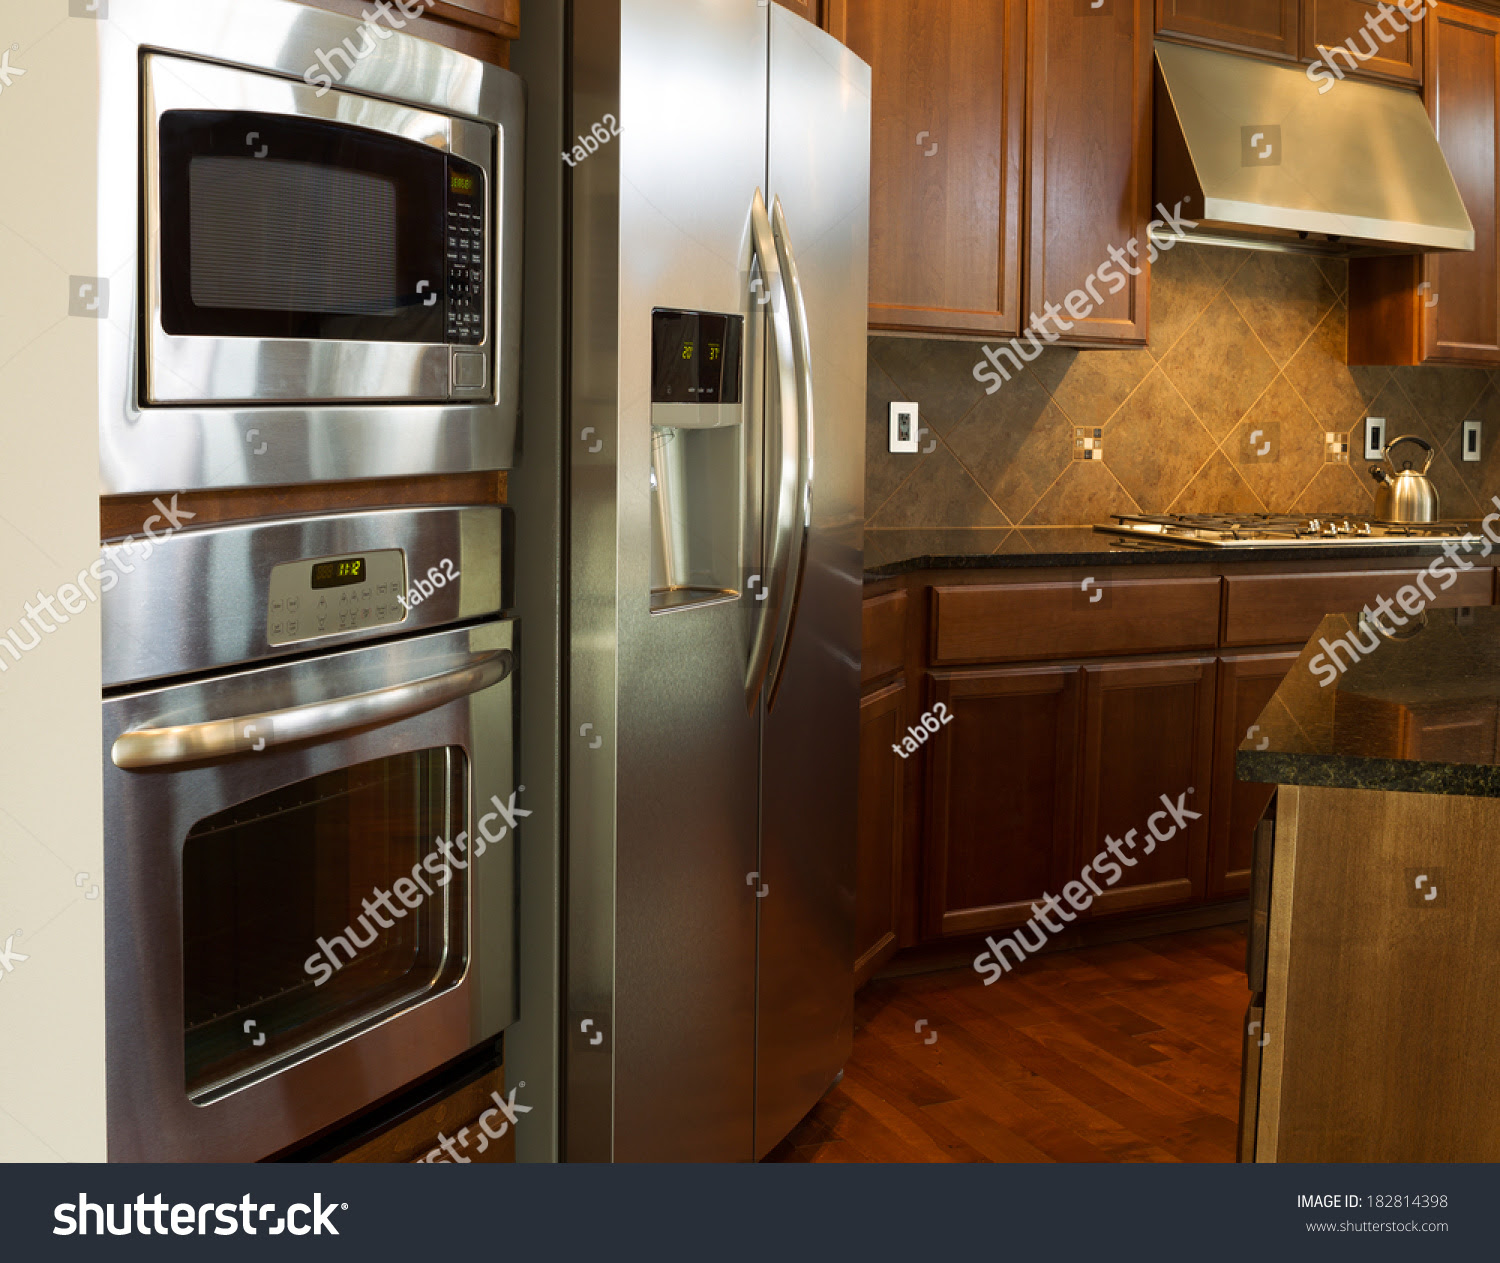 Express Appliance Repair | Commercial Appliance Repair ...